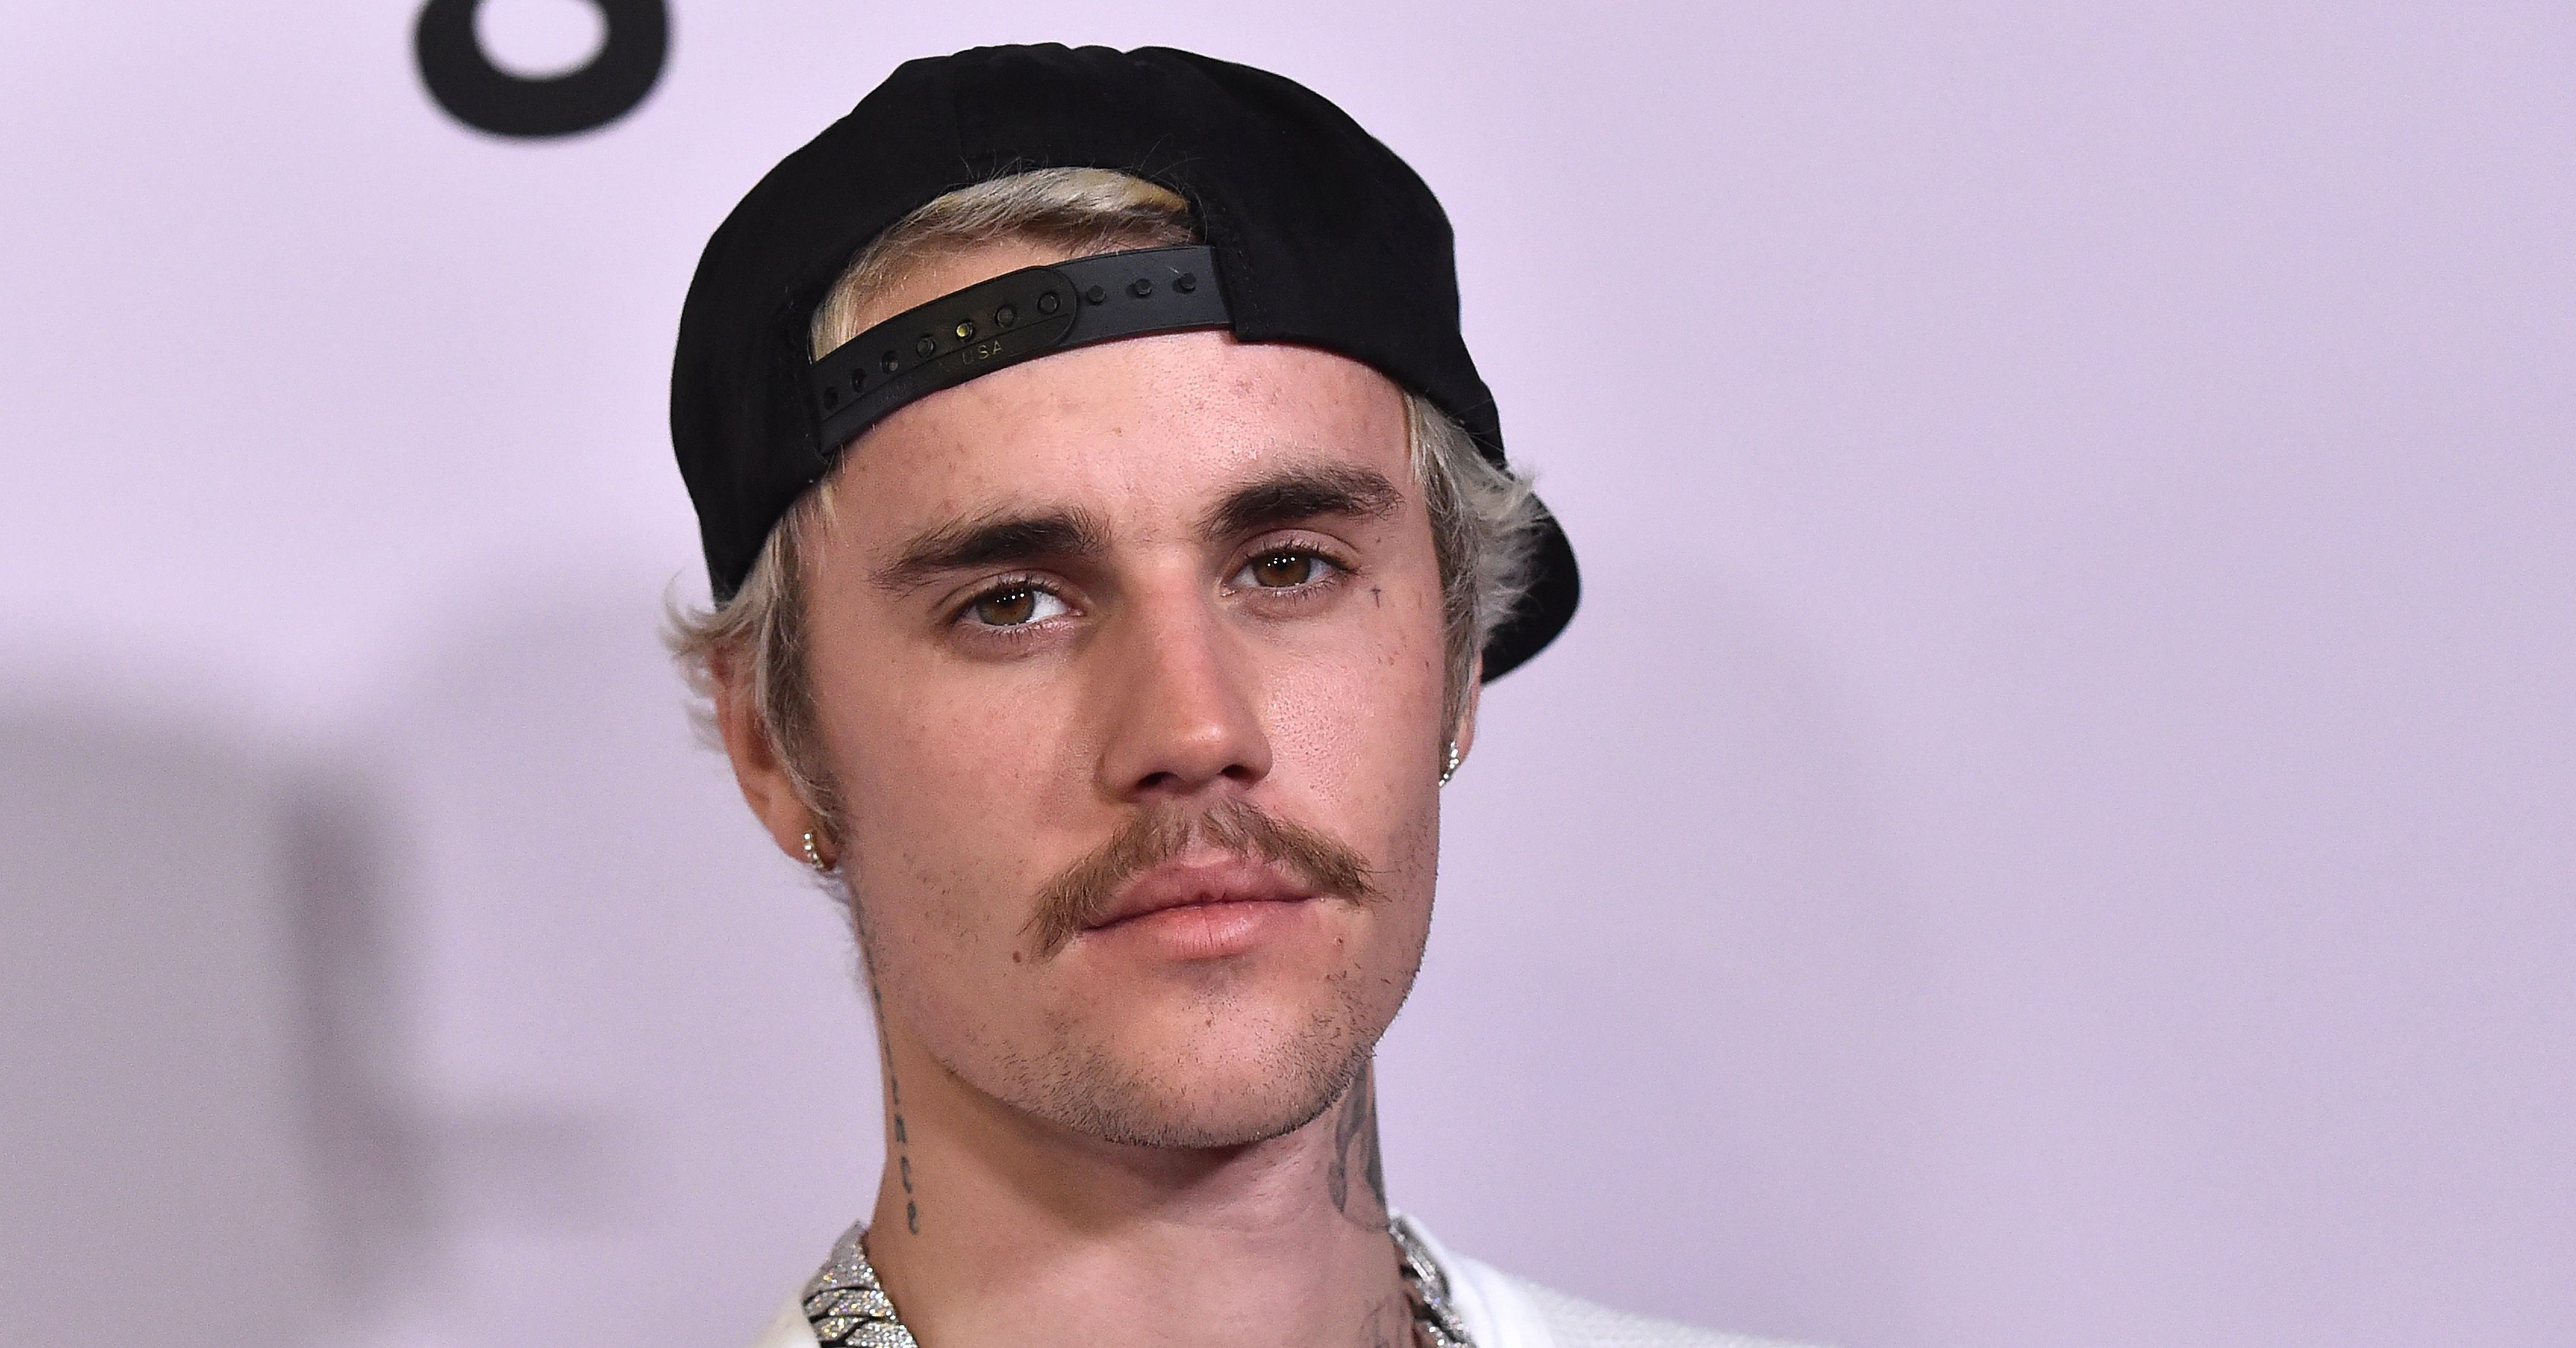 Justin Bieber Shows Literal Receipts To Refute Sexual Assault Claims On Twitter - The Blast